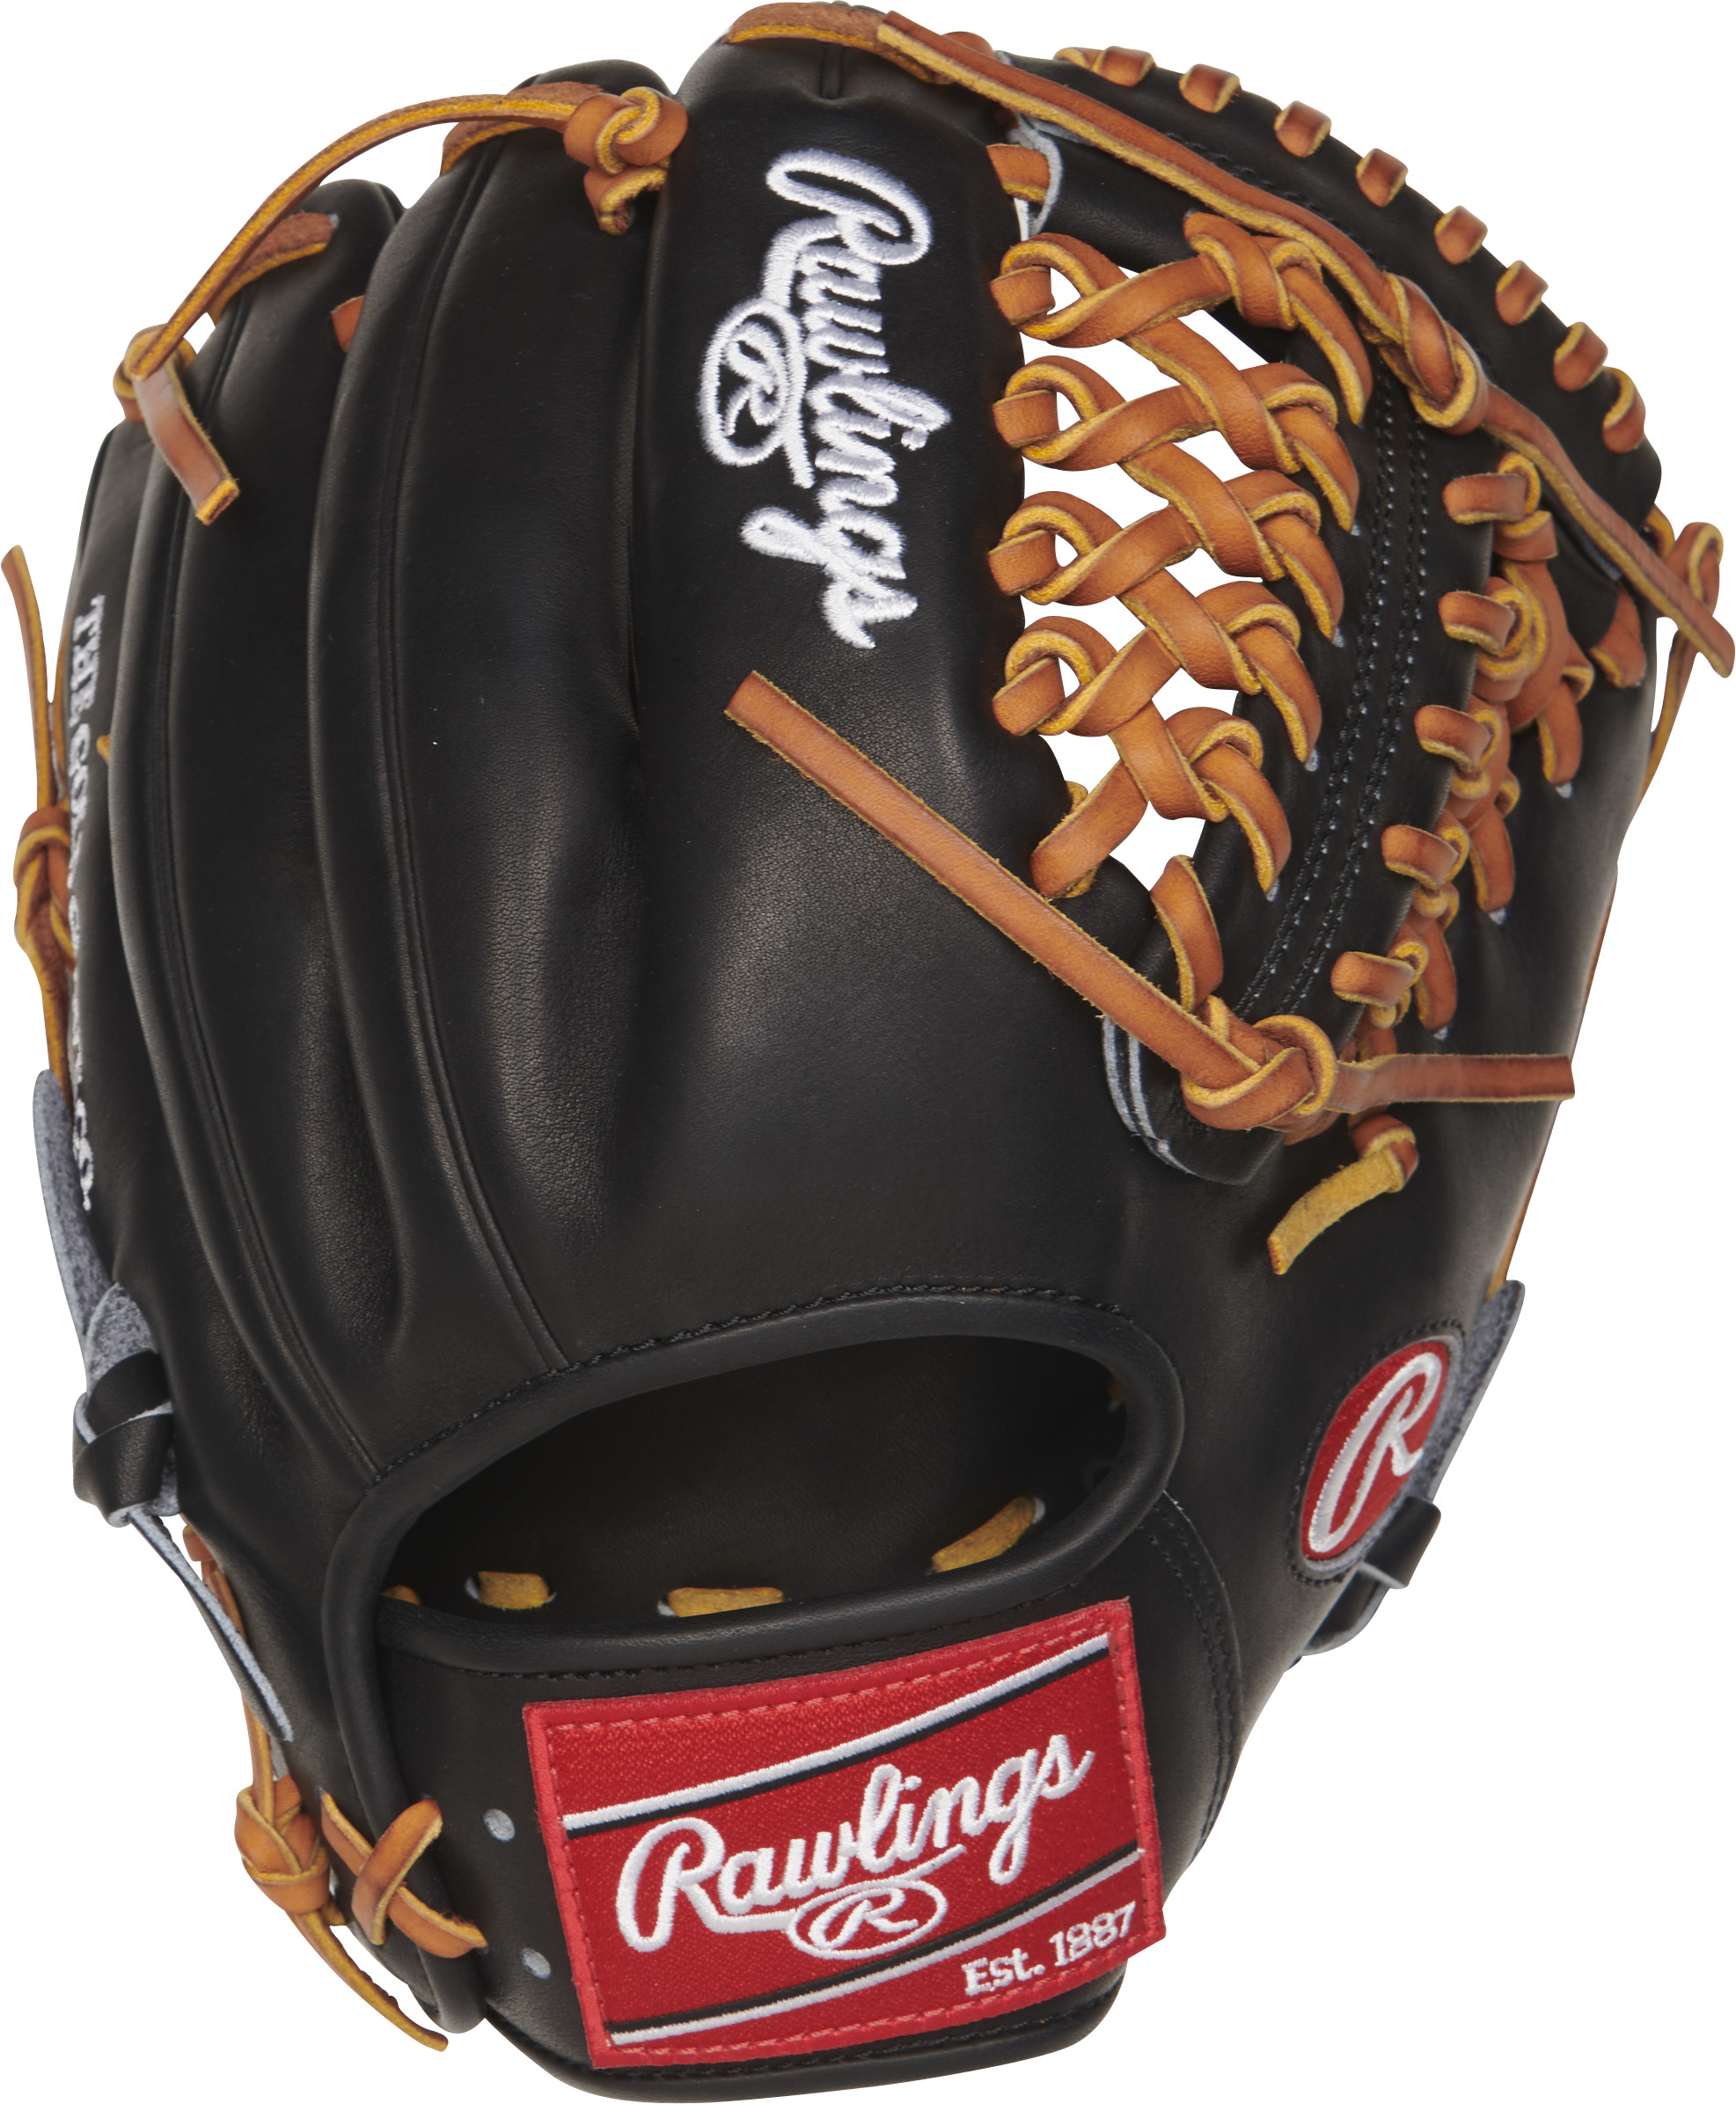 http://www.bestbatdeals.com/images/gloves/rawlings/PRO204-4JBT-2.jpg